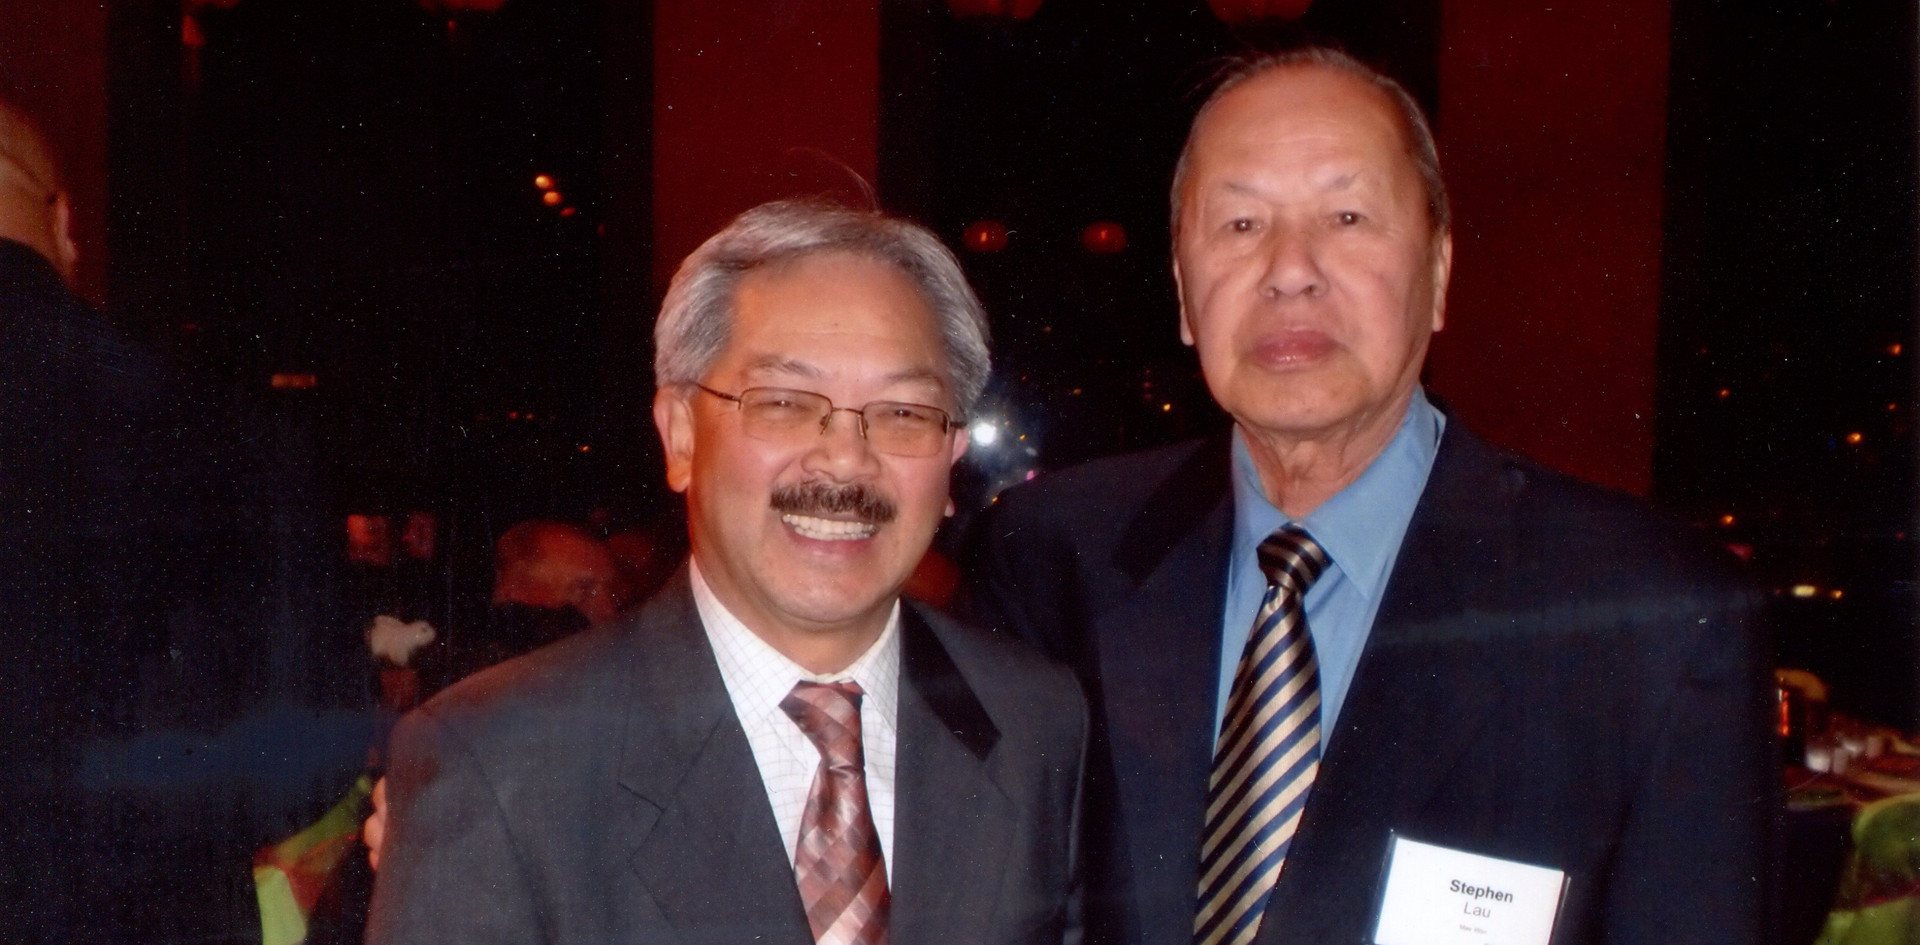 Mr. Stephen Lau, Board Member of USCEC, is Long-time Friend and one of his Campaign Staff of Mayor Edwin Lee, the former Mayor of City of San Francisco